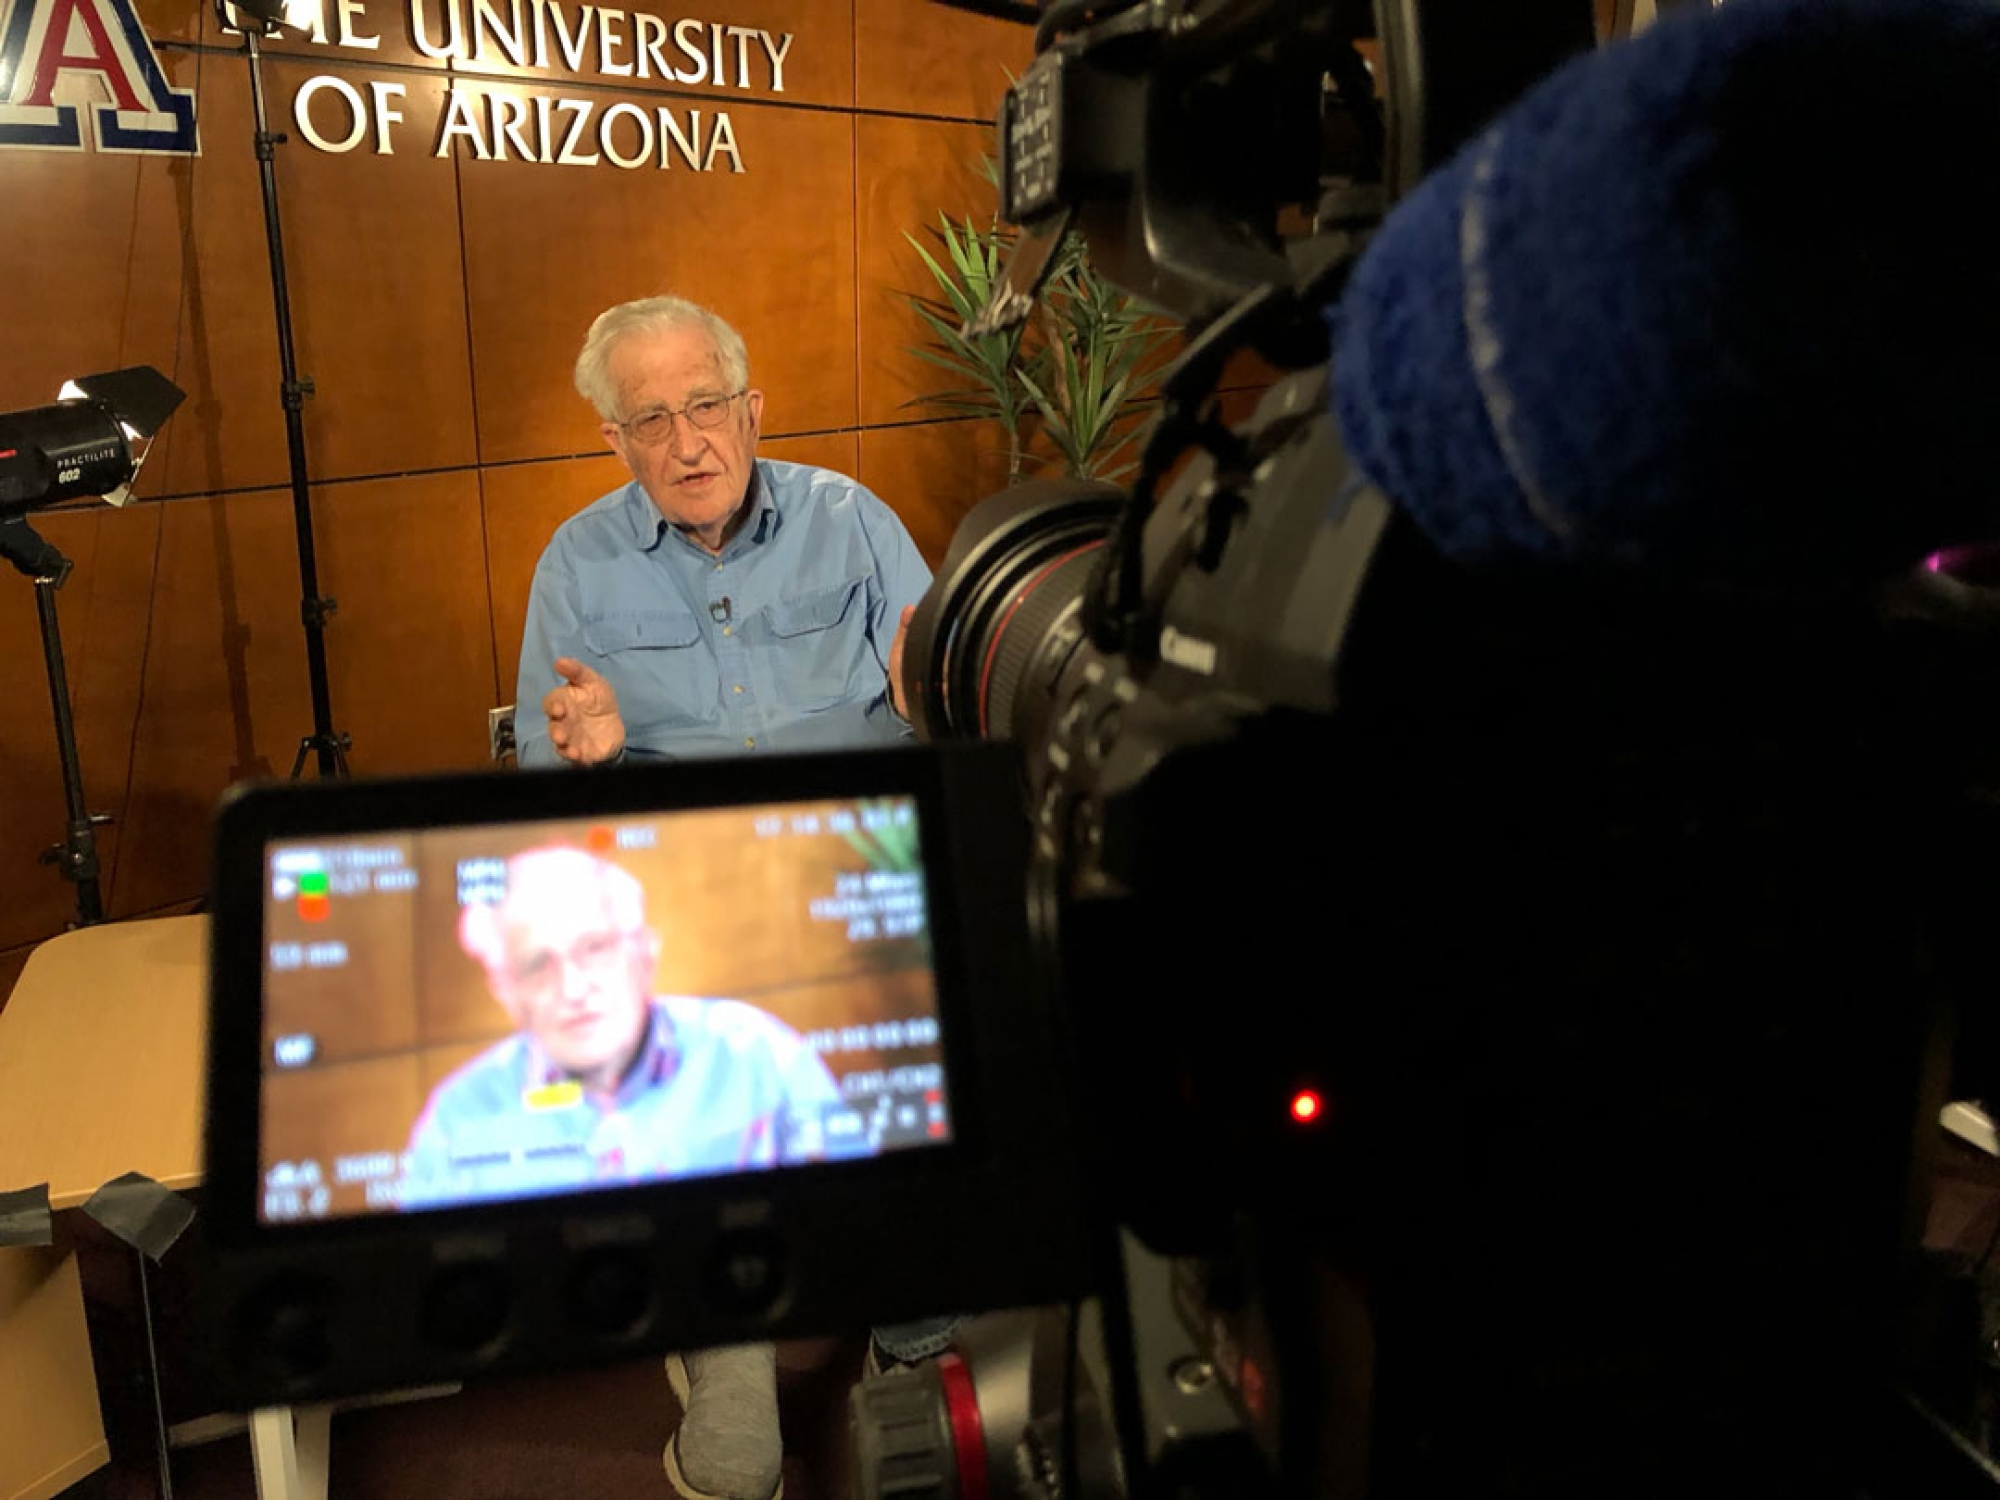 Noam Chomsky recording a lecture